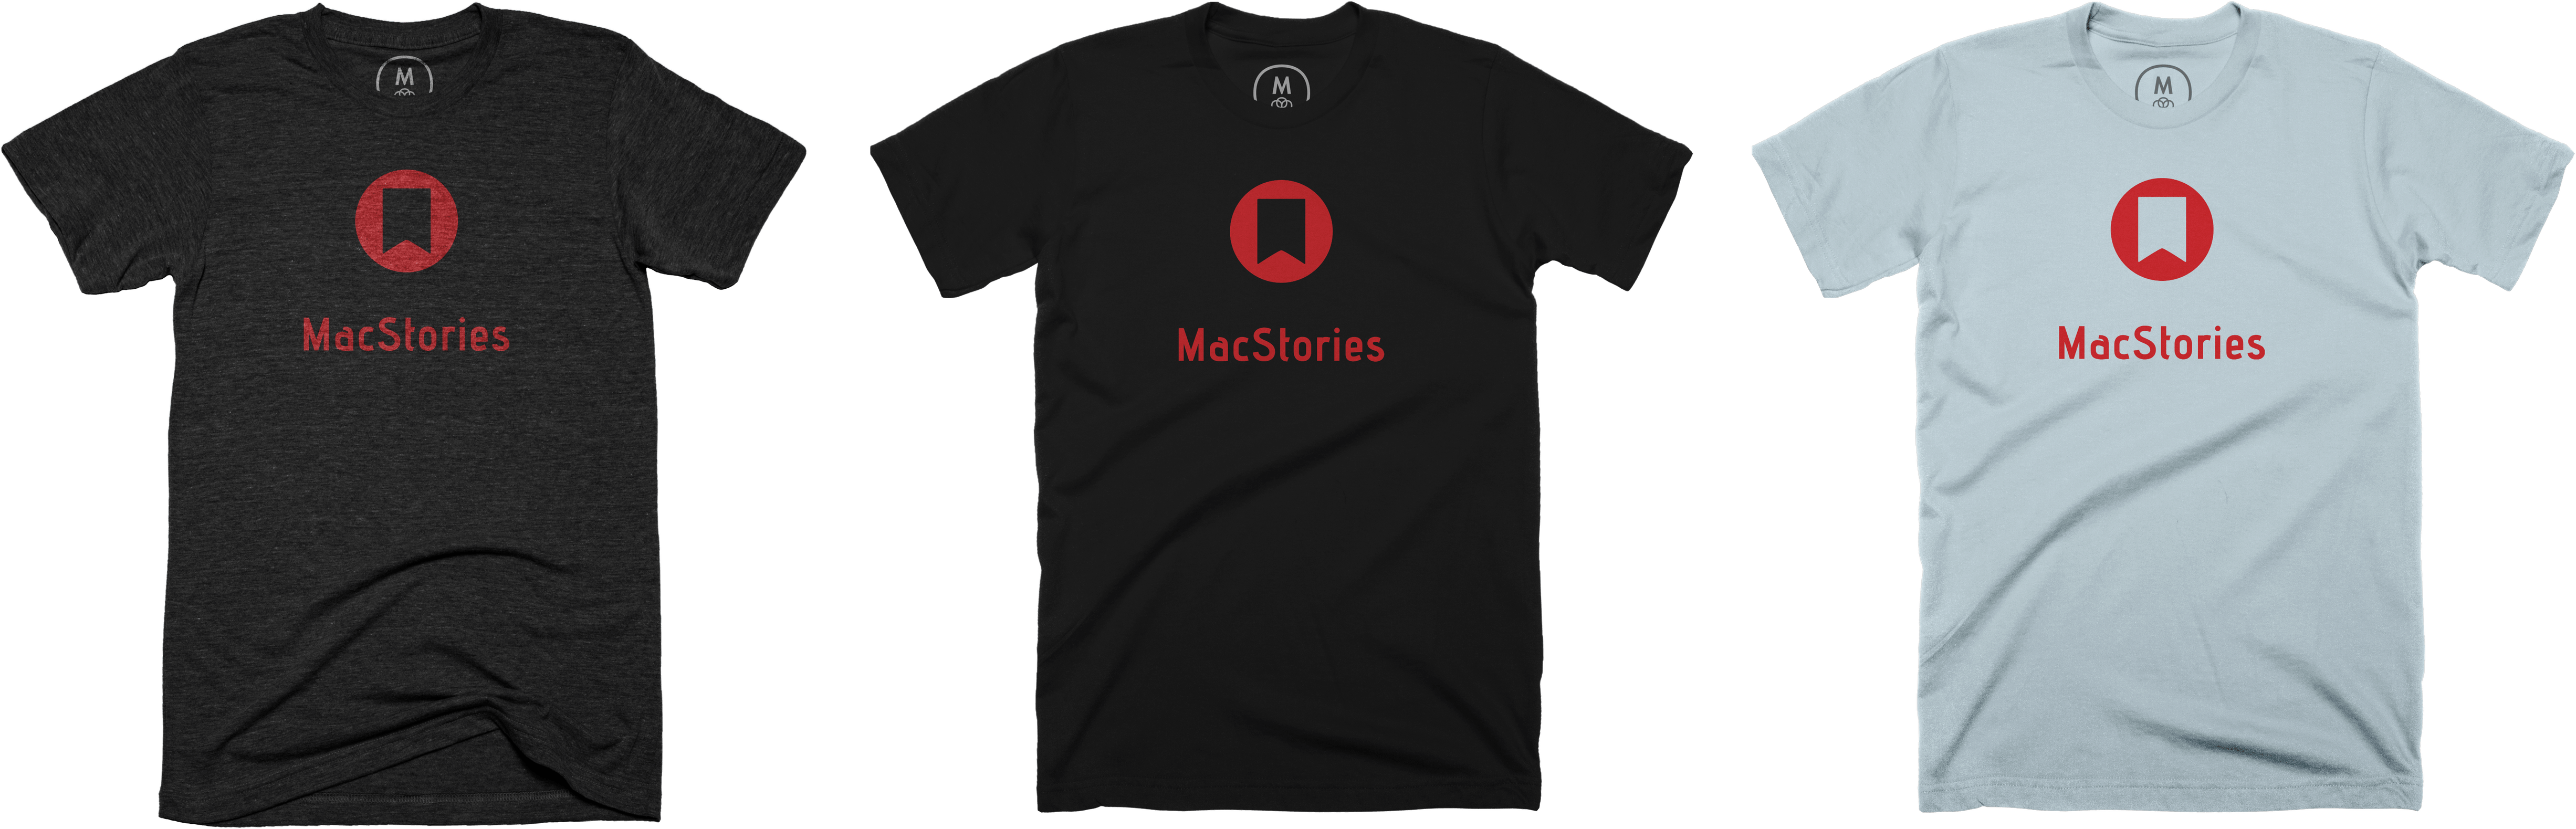 Announcing the MacStories 10th Anniversary T-shirt and Pin